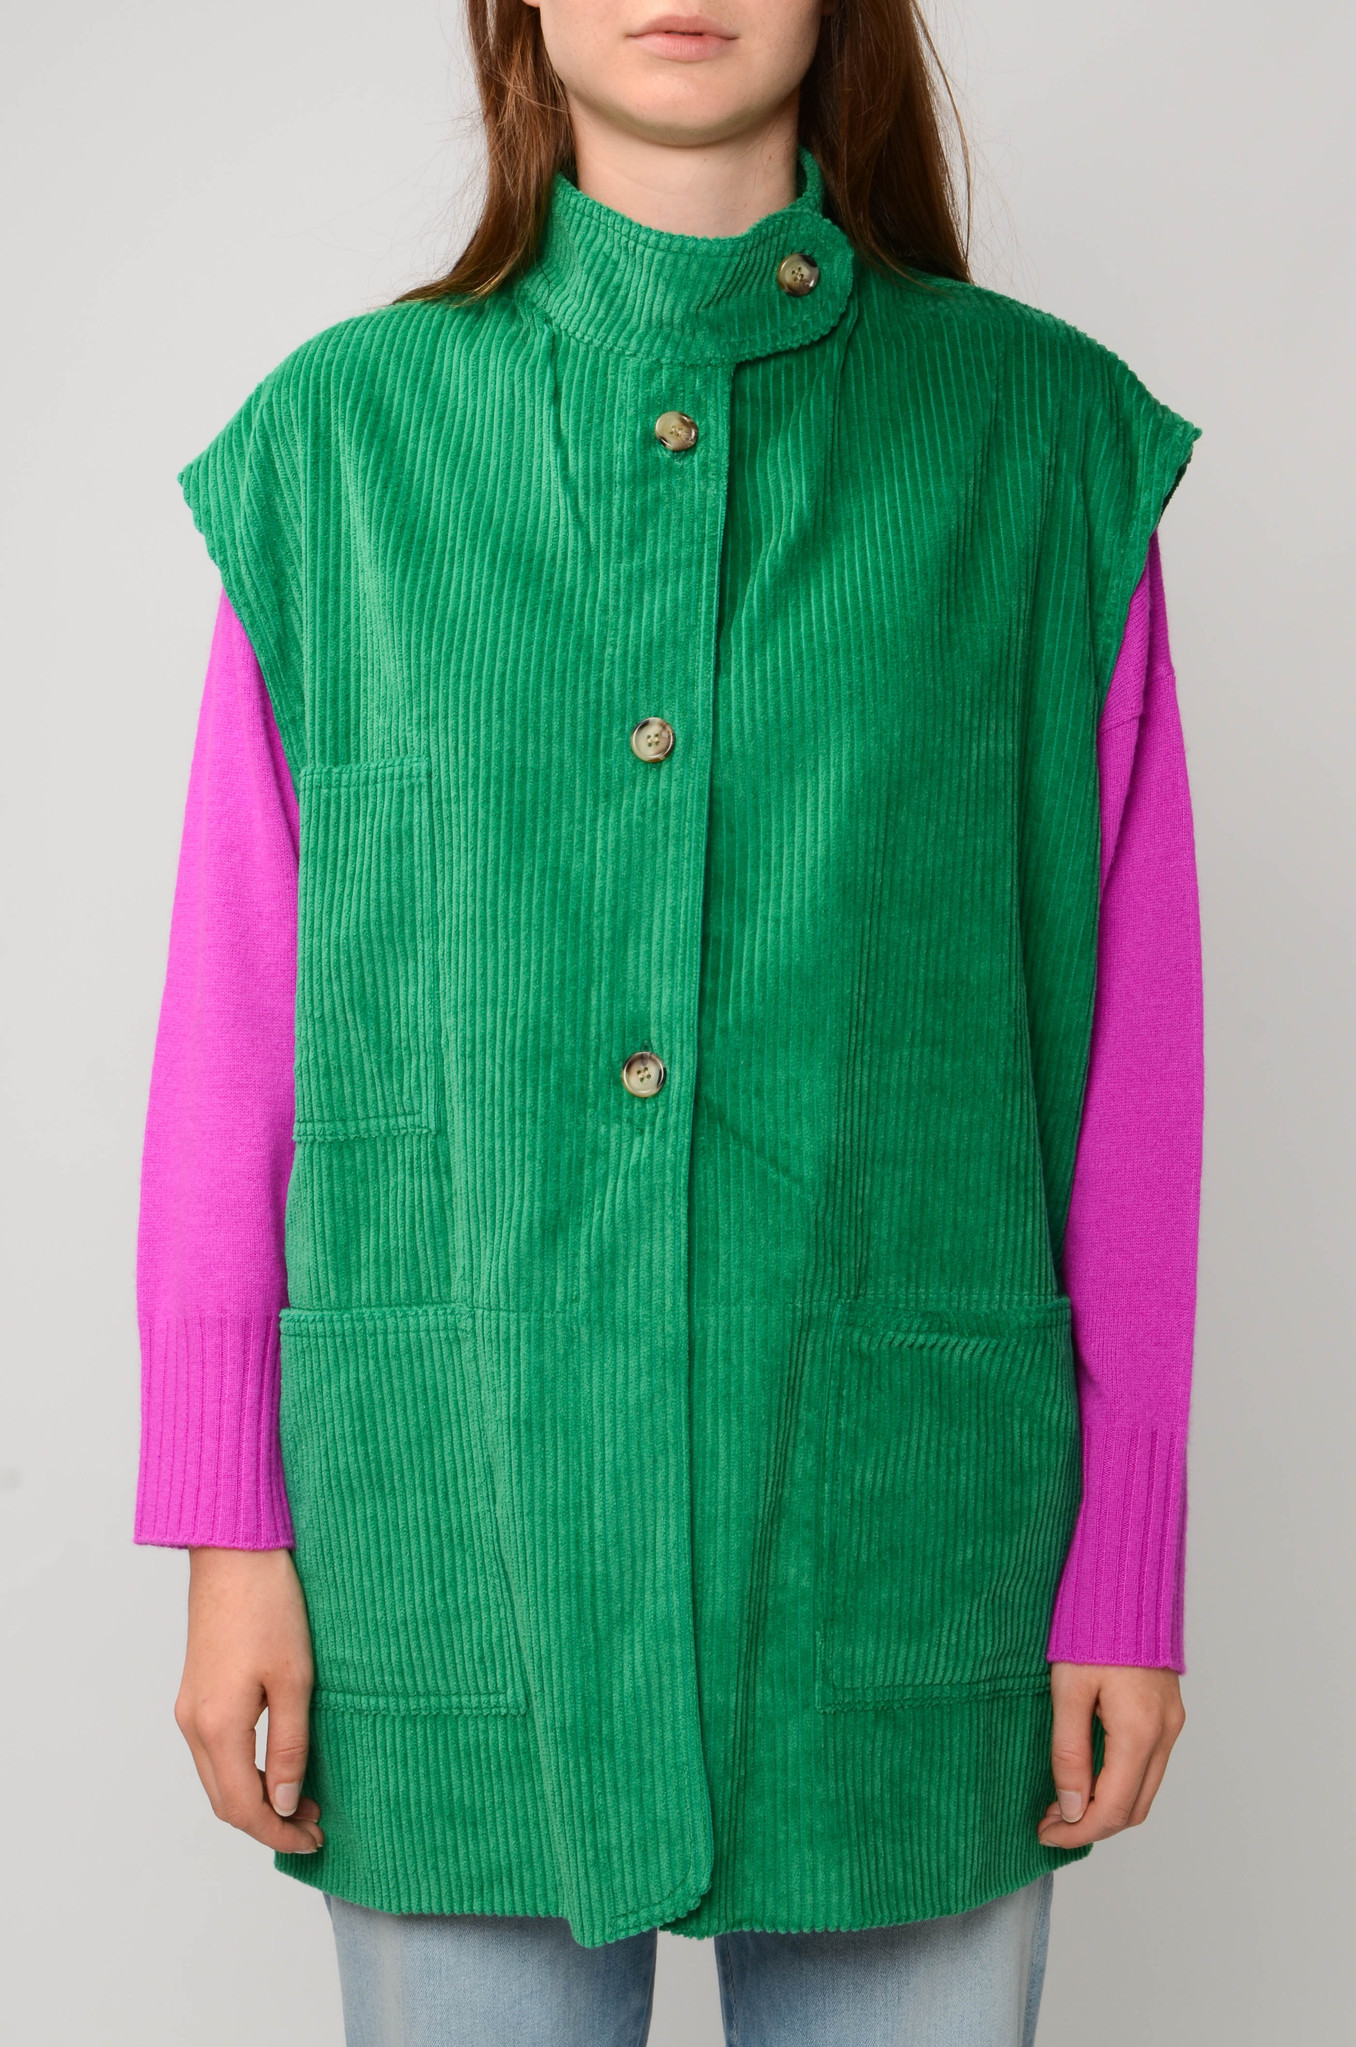 JAGGER JACK IN EMERALD GREEN-3